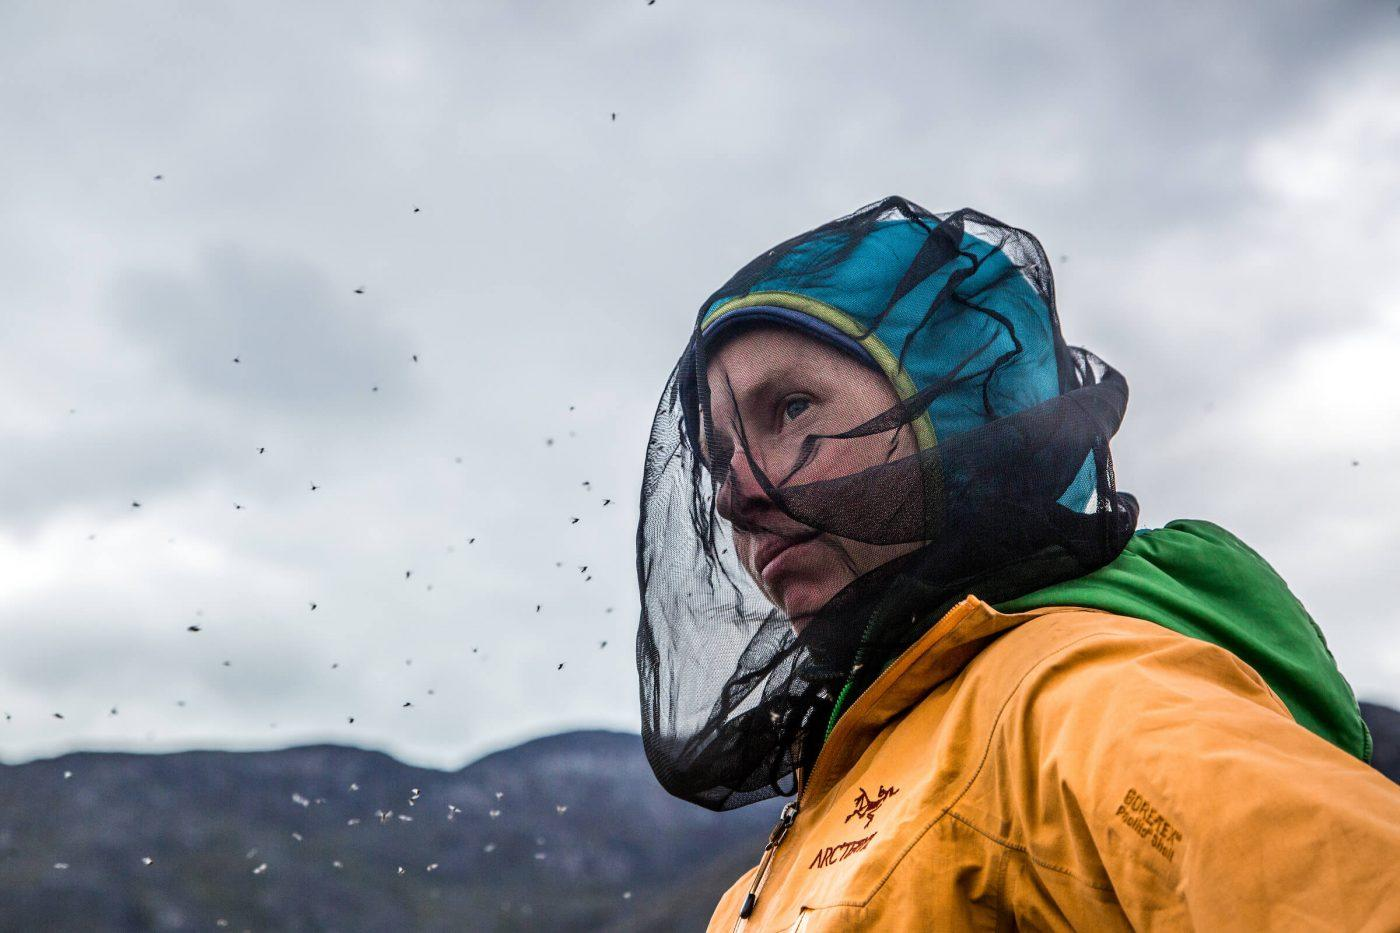 Hiker wards off pesky mosquitos by wearing a mosquito head net while adventuring in Nuuk Fjord. Photo by Raven Eye Photography